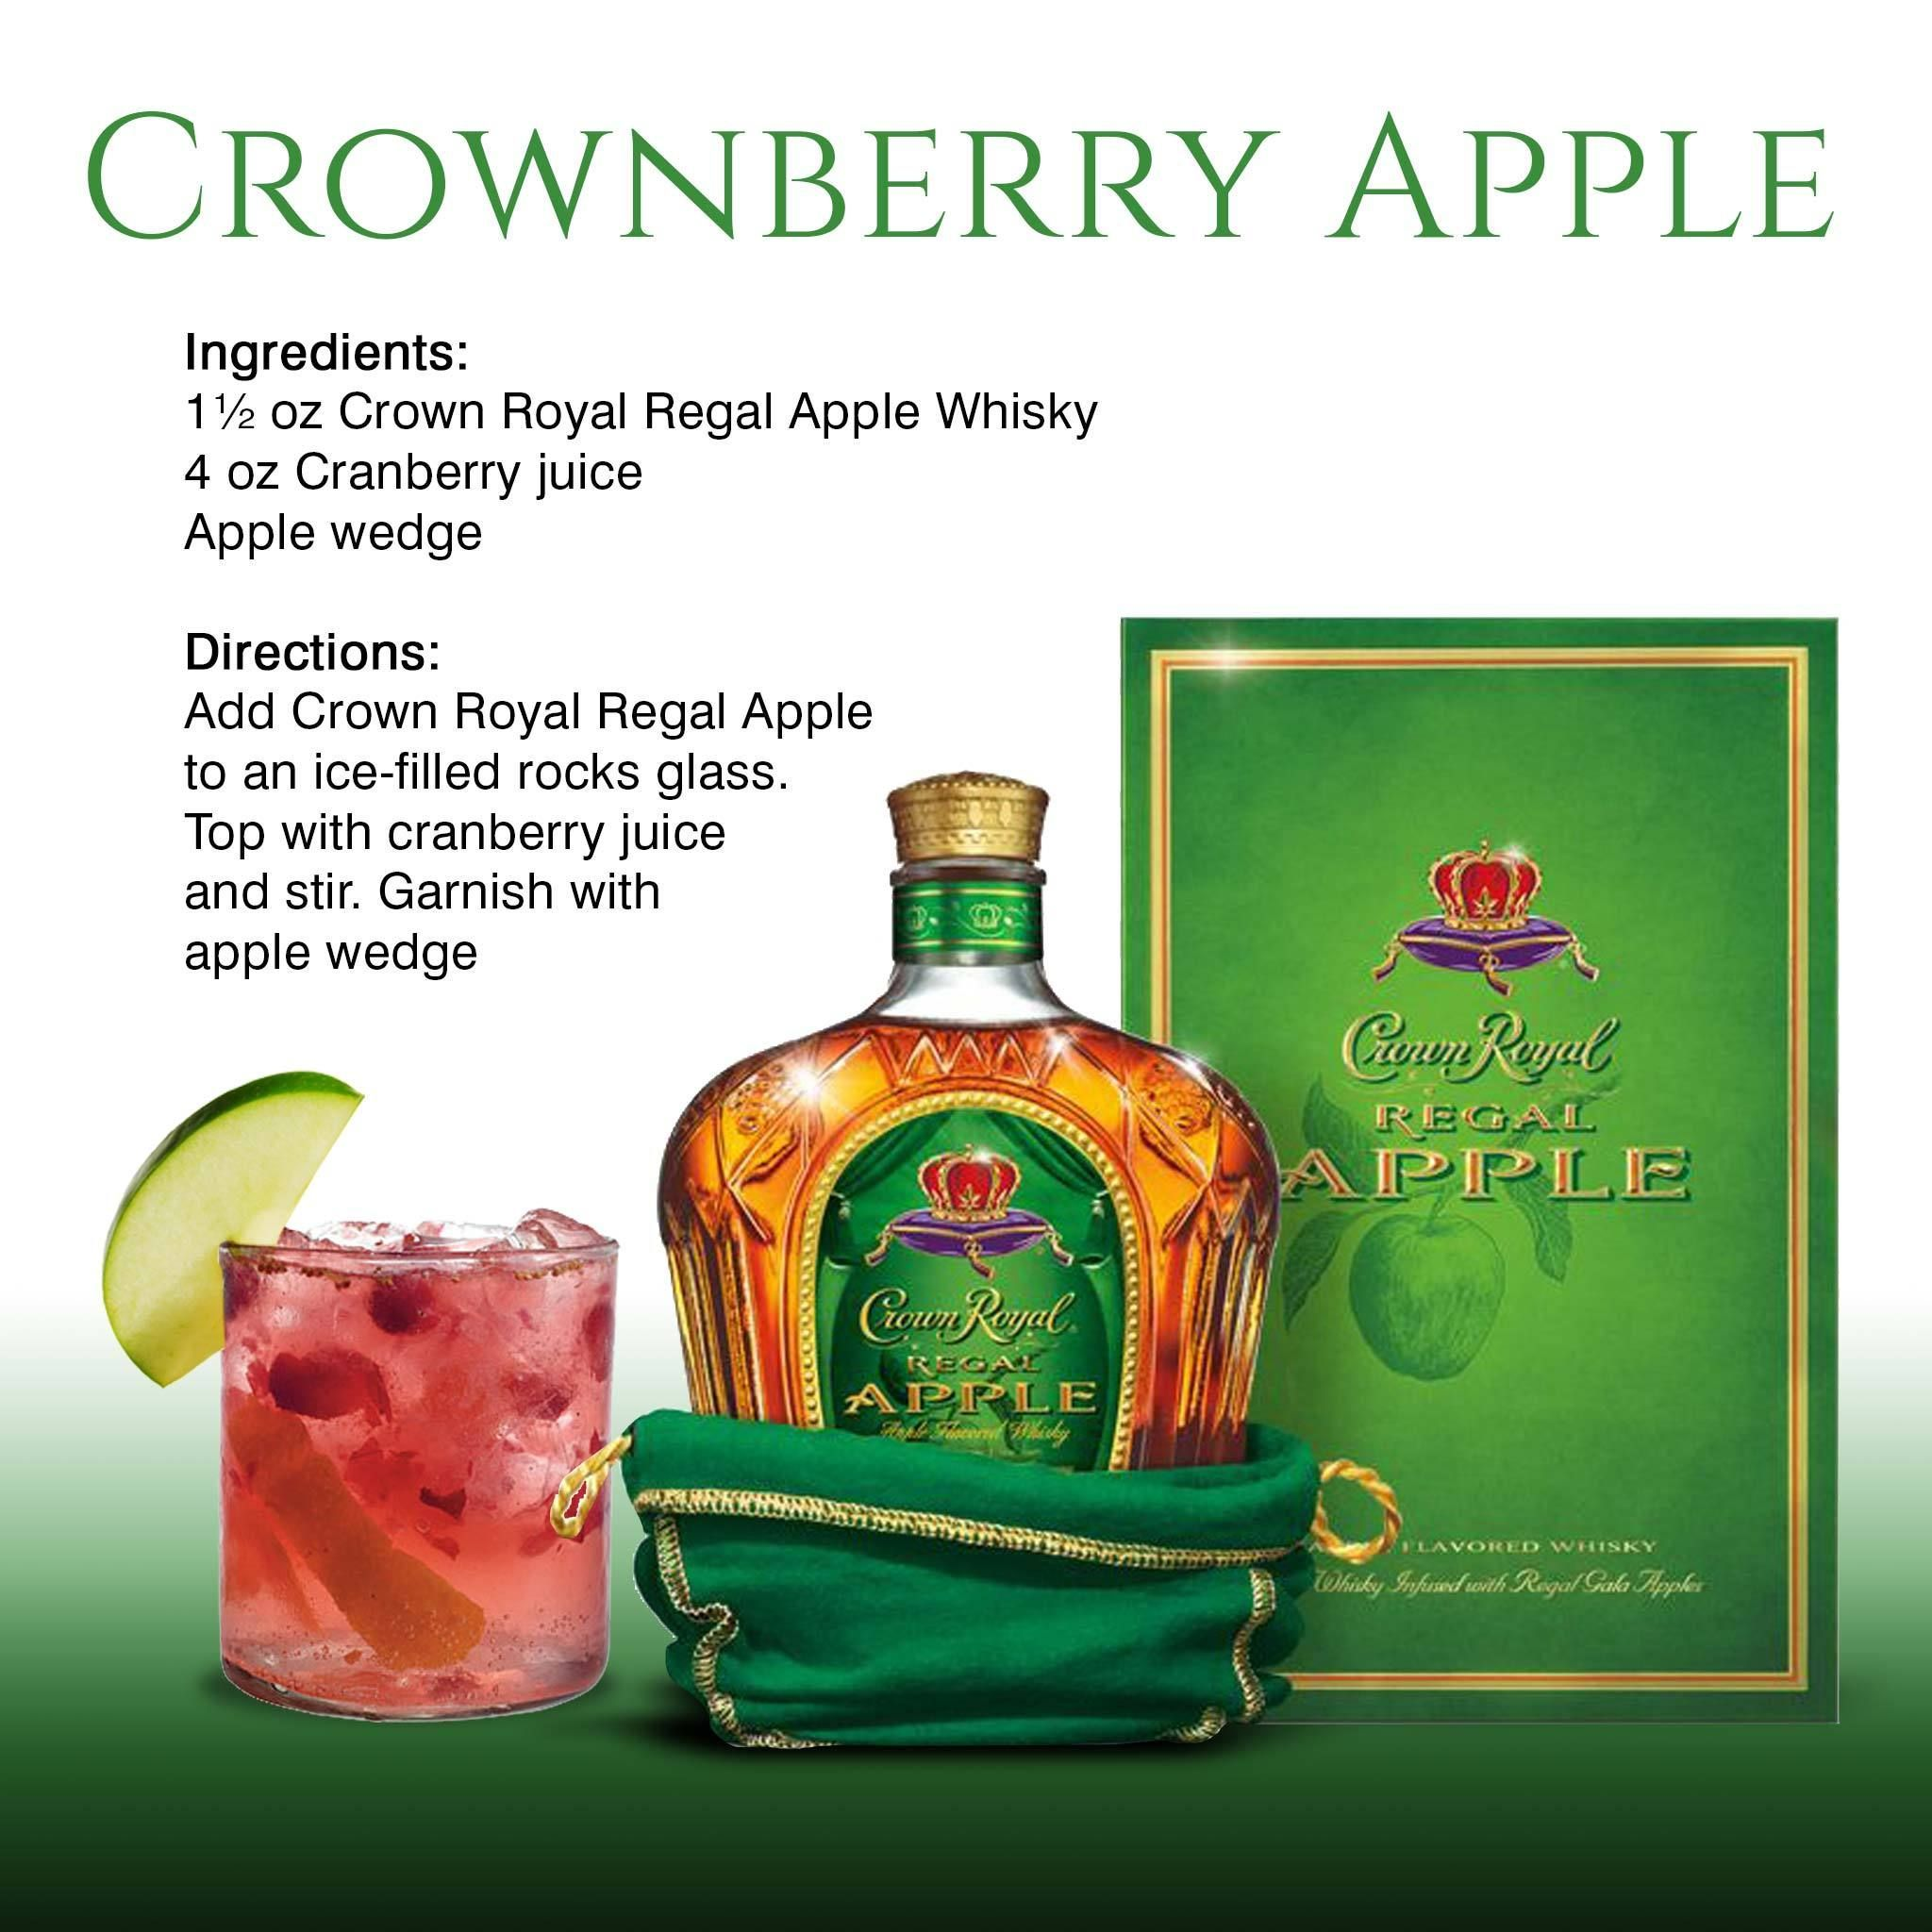 Crownberry Apple Recipe Featuring Crown Royal Regal Apple